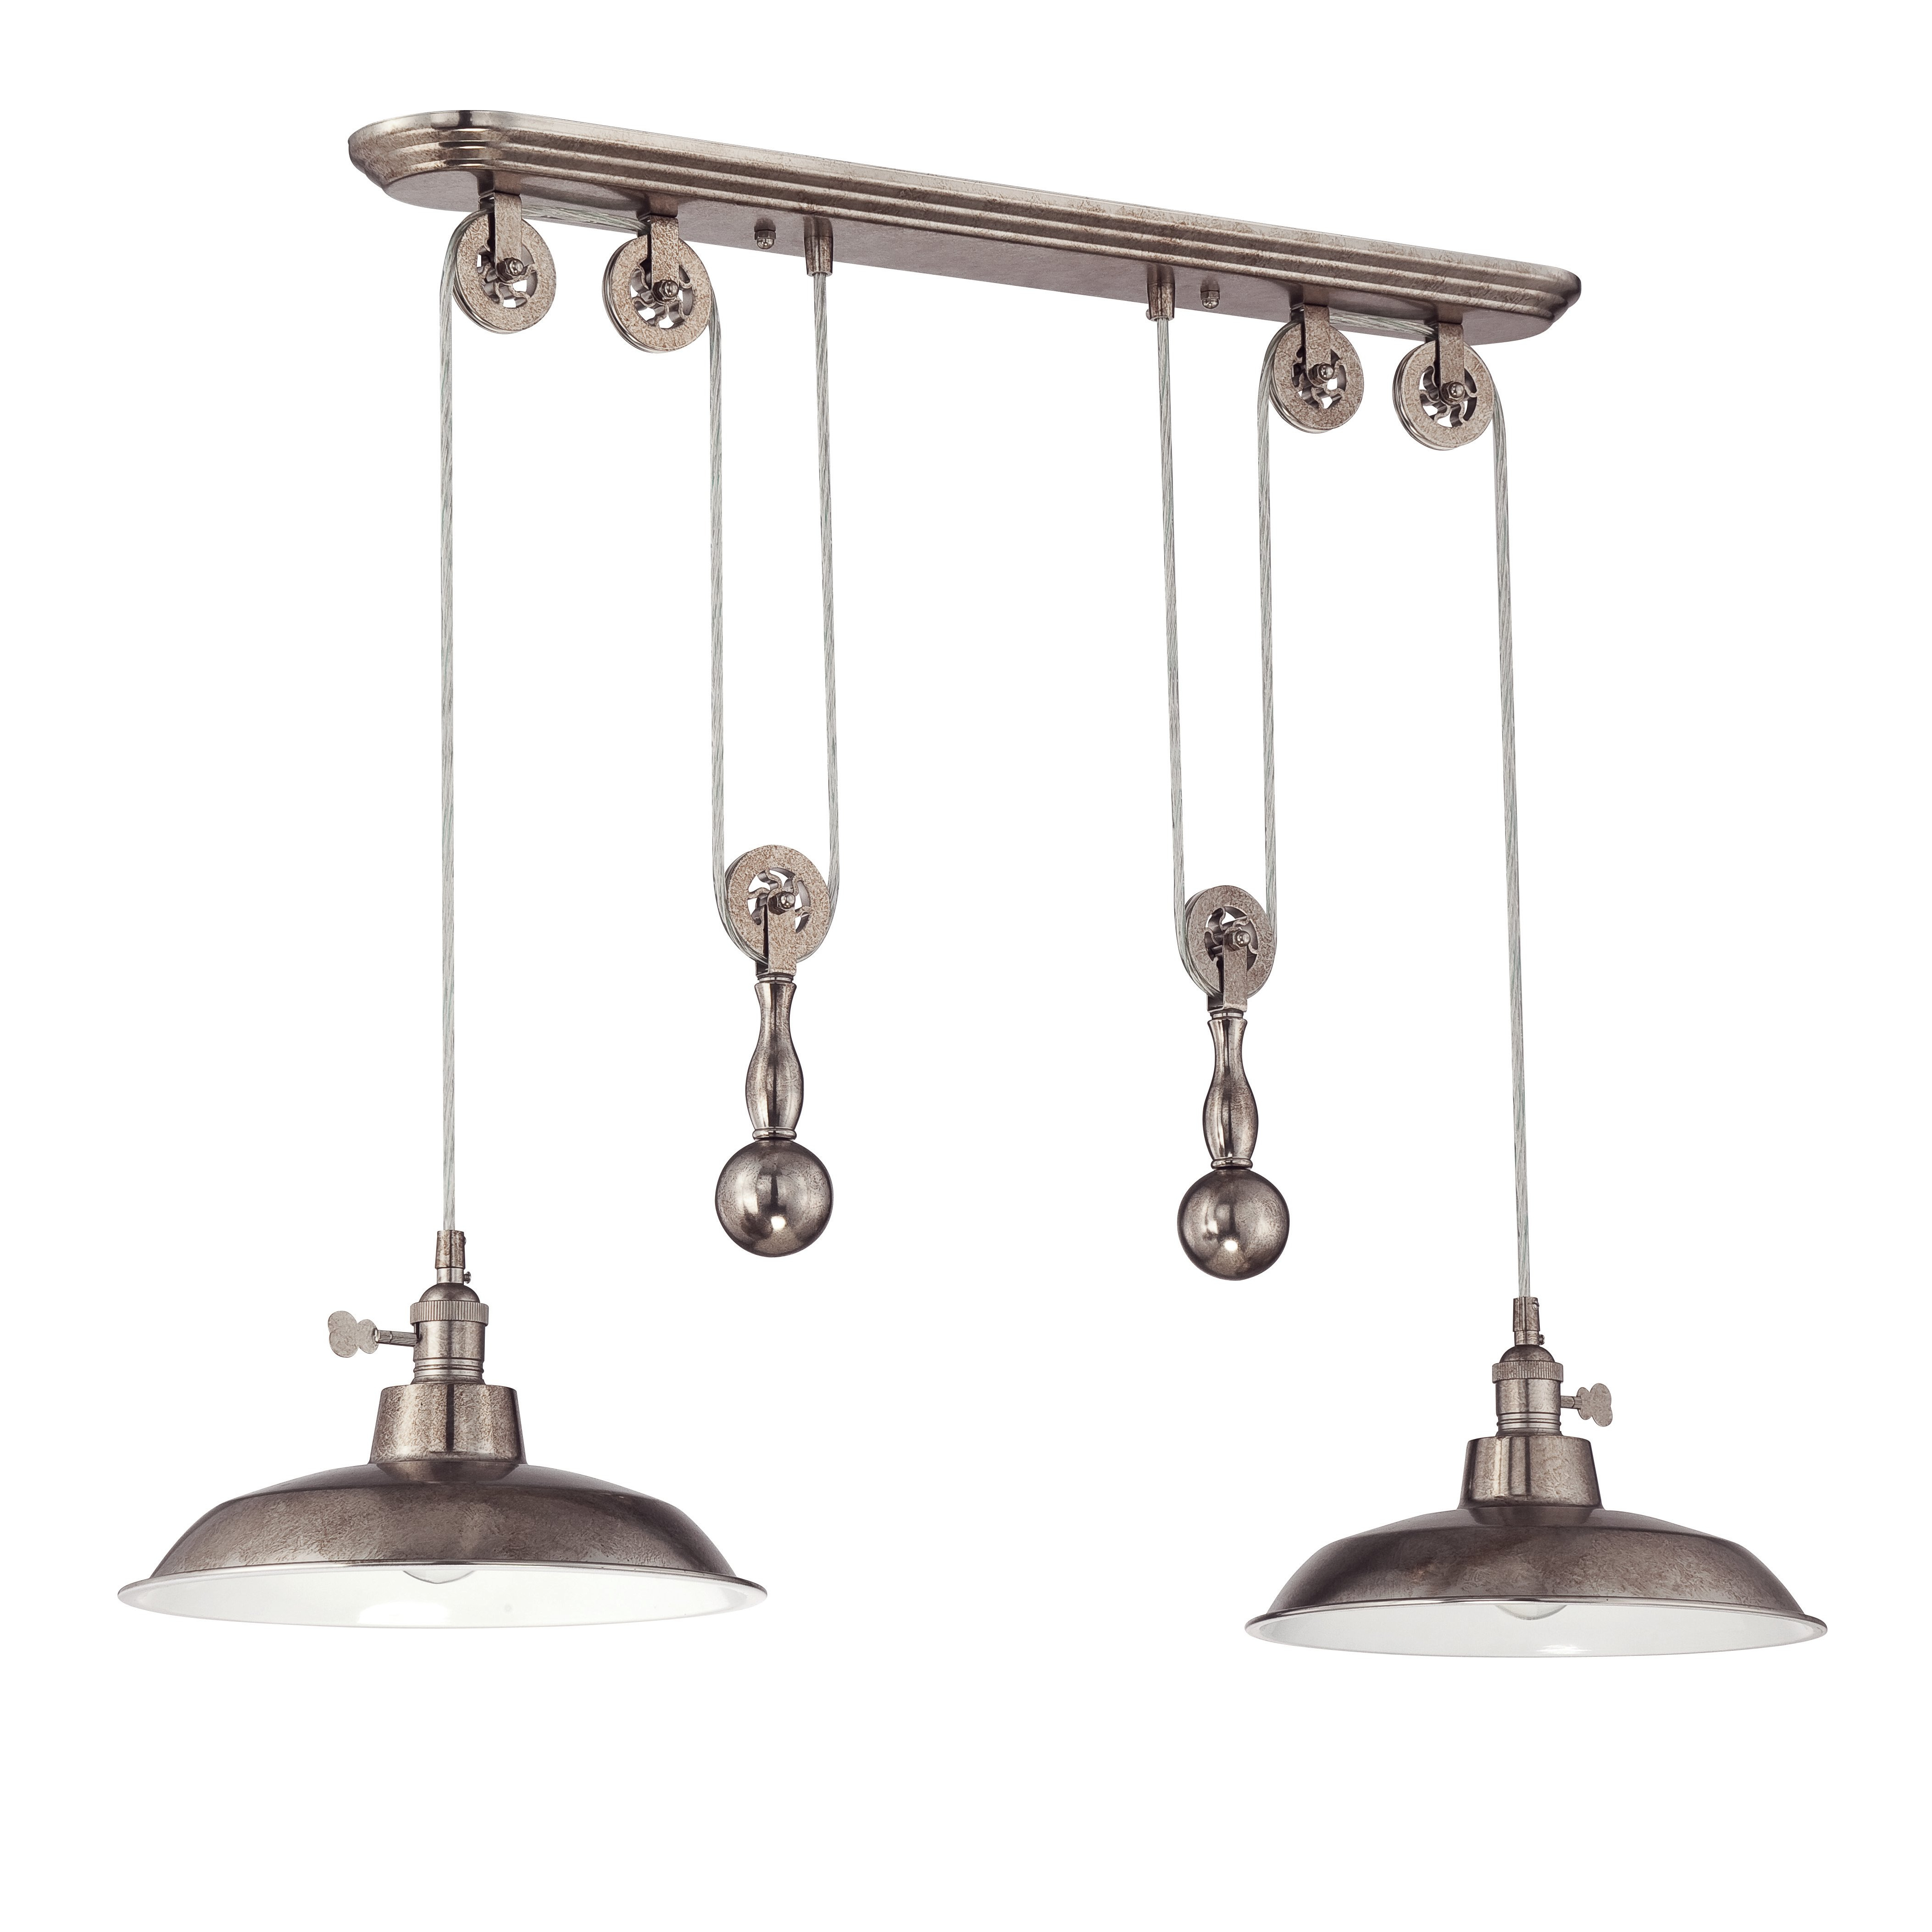 Ariel 2-Light Kitchen Island Dome Pendant inside Cinchring 4-Light Kitchen Island Linear Pendants (Image 4 of 30)